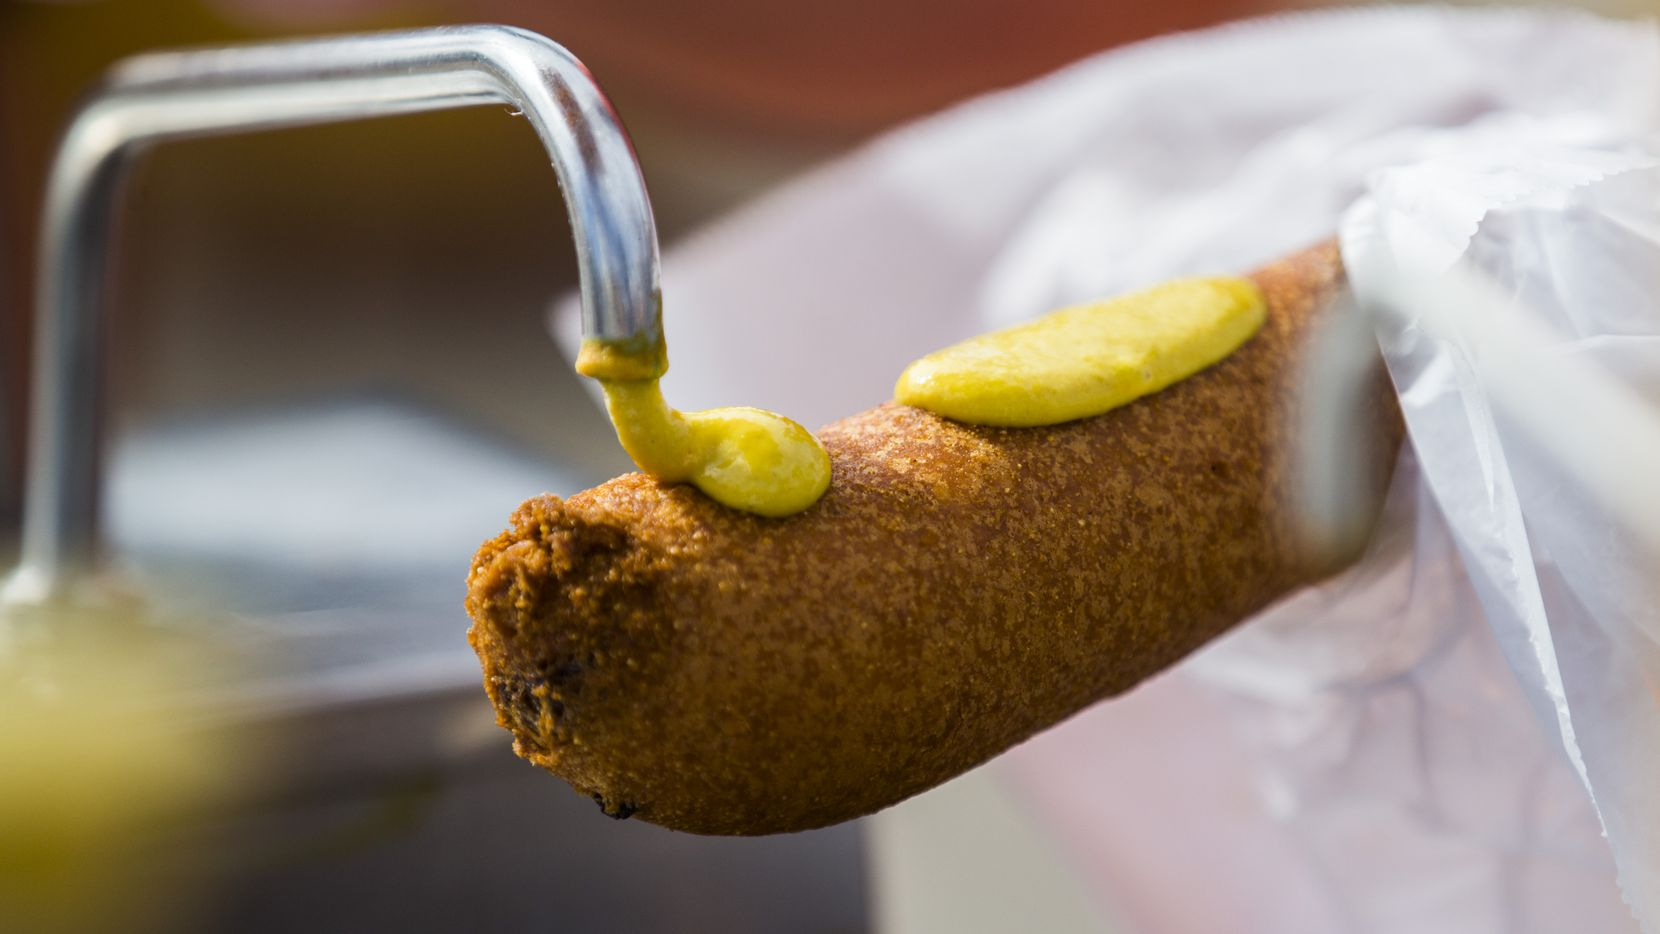 Fletcher's corny dogs have been sold at the State Fair of Texas since 1942. They're a staple at the fair and a known brand, and the Fletcher's family is suing fellow members of their family so they don't use the Fletcher's name on other businesses.